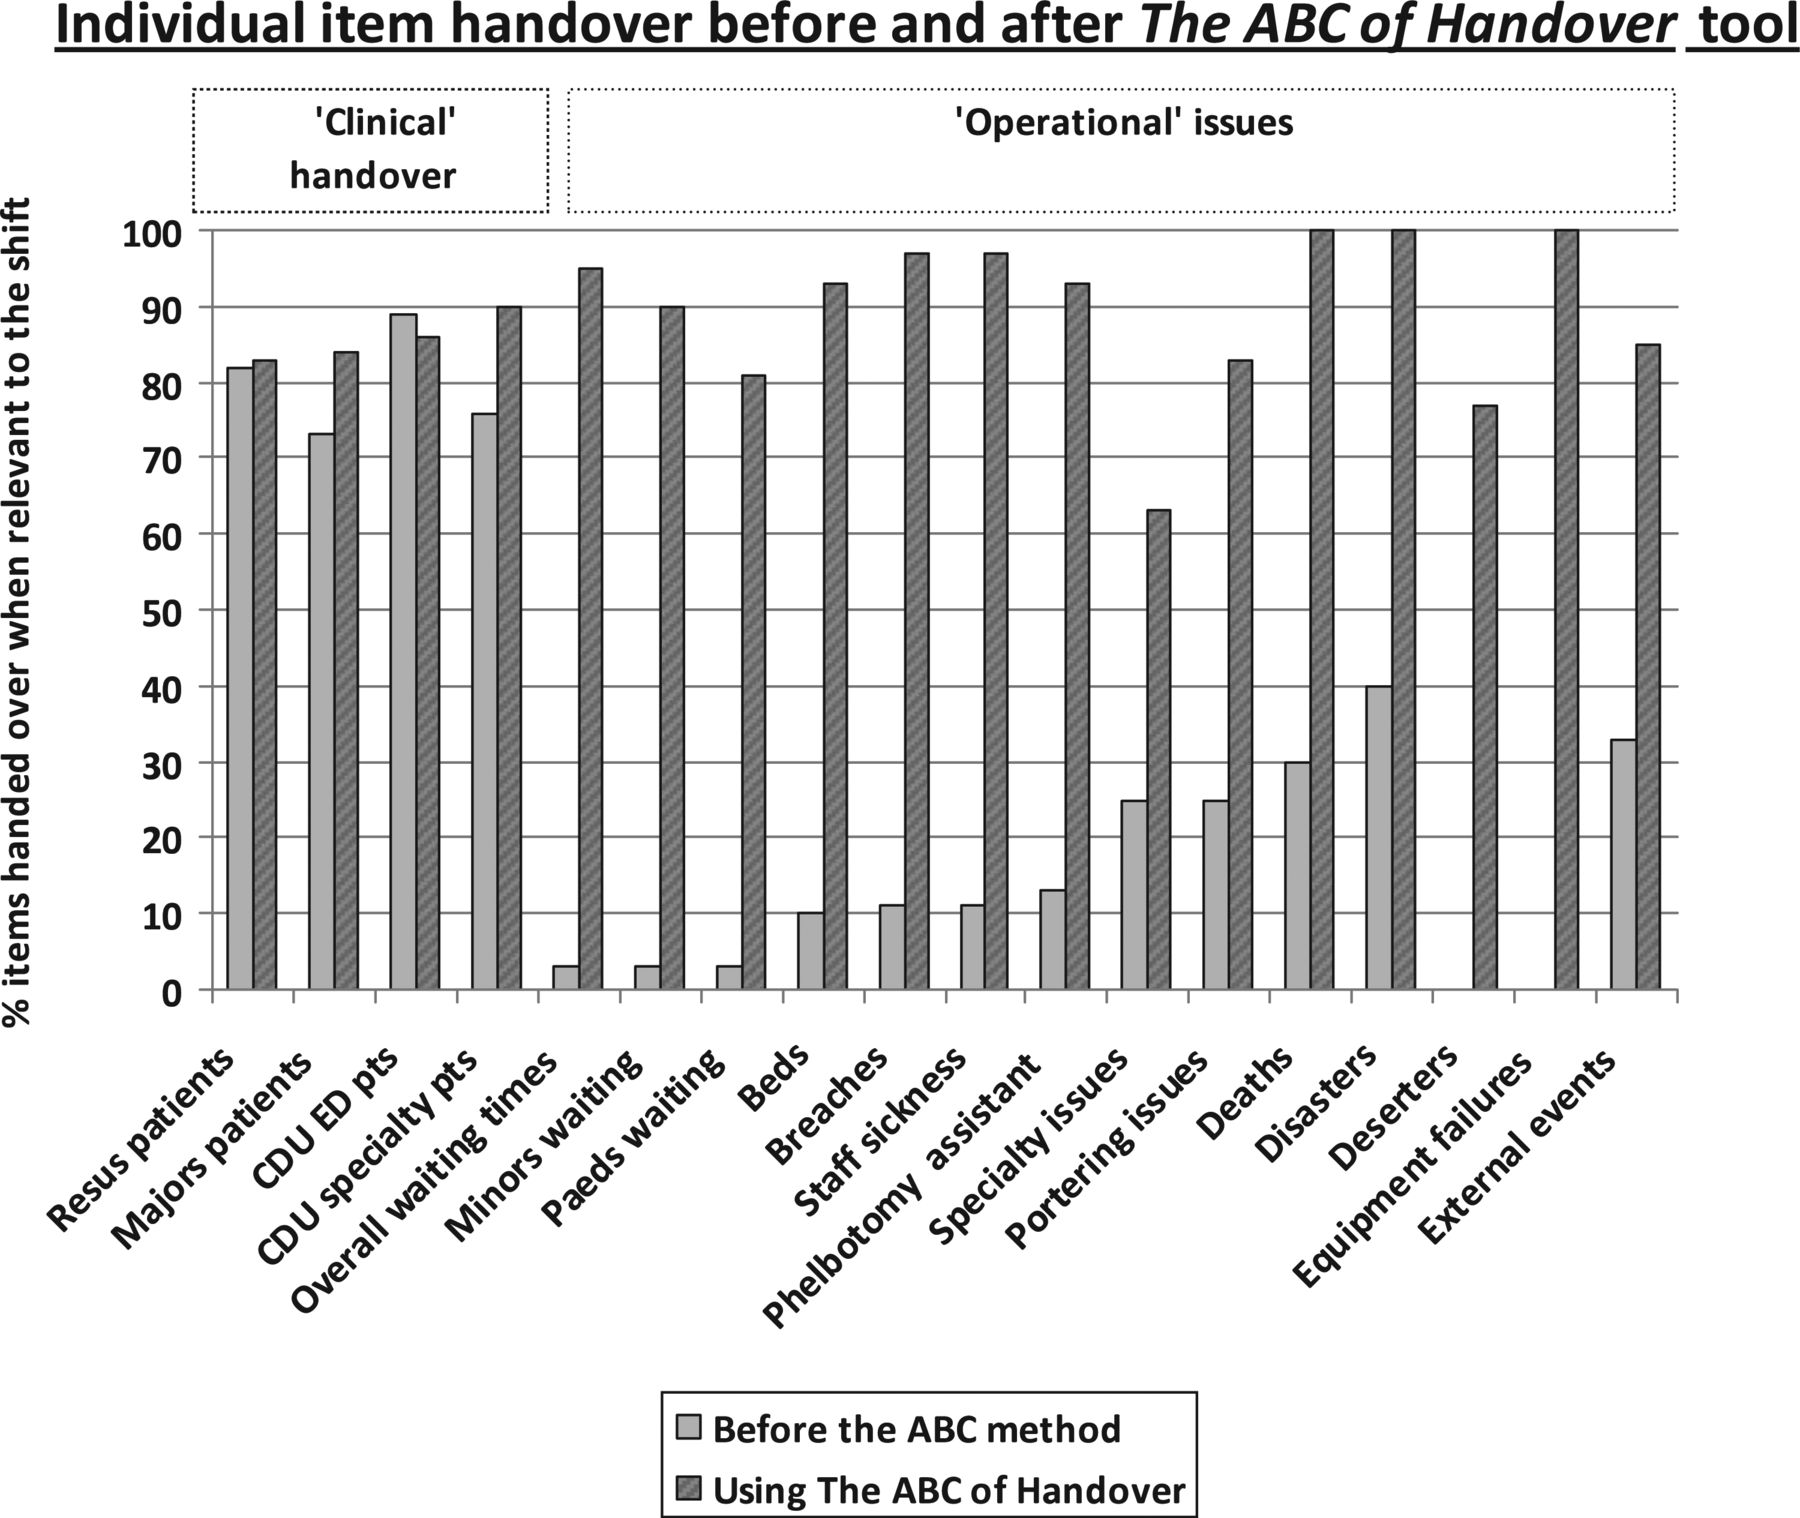 The ABC of handover: impact on shift handover in the